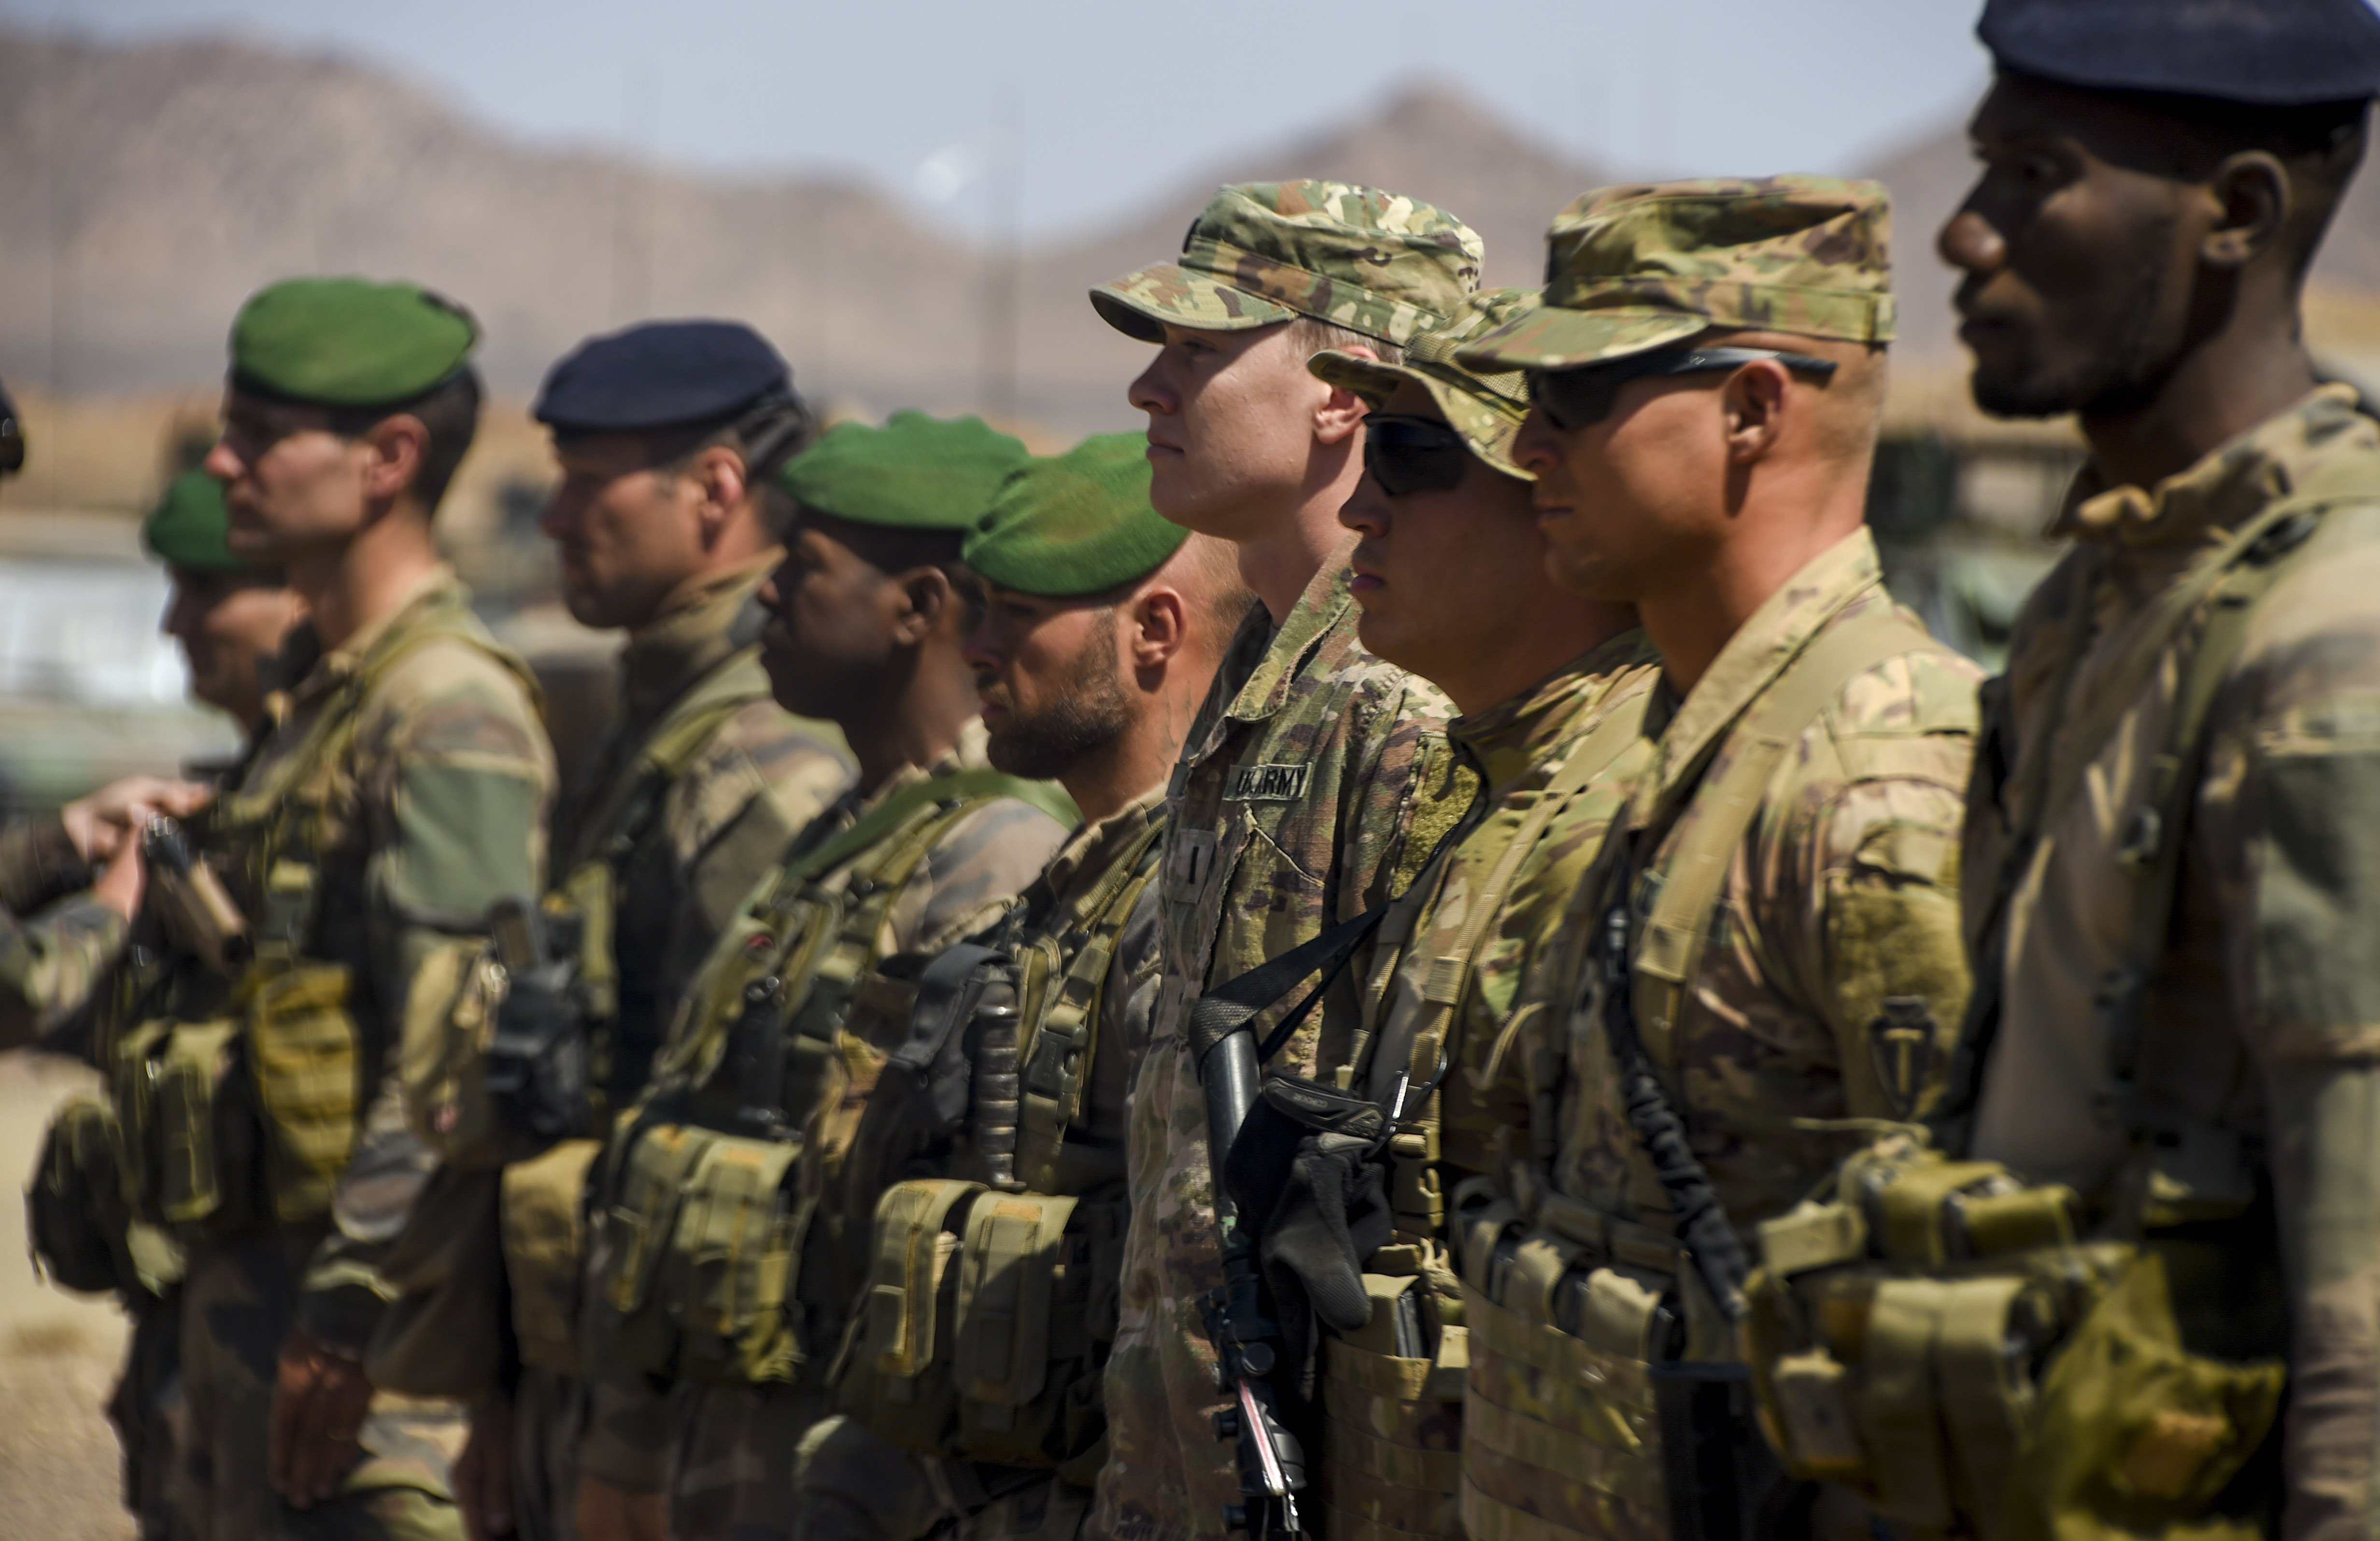 U.S. Army 1st Lt. Nicholas Bergam, Spc. Richard Baker, and Sgt. Kyle Parrin, all assigned to Combined Joint Task Force - Horn of Africa (CJTF-HOA), and French marines assigned to the 5th Overseas Interarms Regiment stand in line to receive their French Desert Commando Course pins during the graduation ceremony near Ali Sabieh, Djibouti, Dec. 7, 2017. The Soldiers and marines received special recognition as honor graduates of the course. (U.S. Air Force photo by Staff Sgt. Timothy Moore)